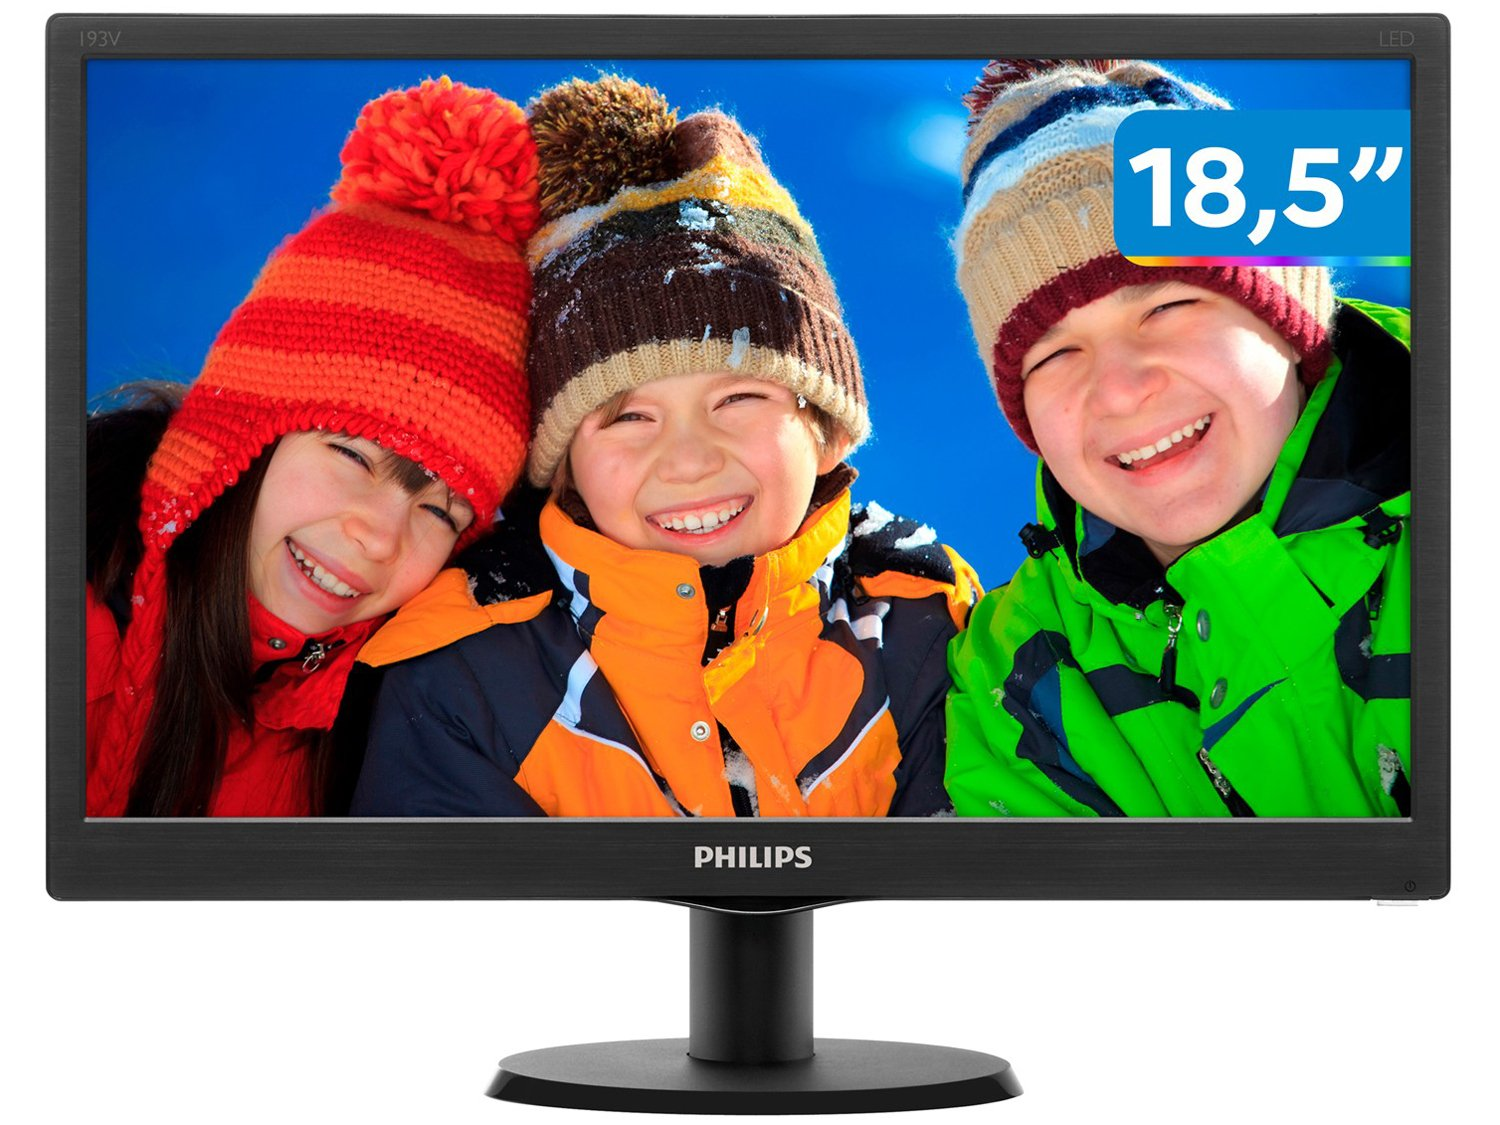 Monitor para PC HD Philips LED Widescreen 18,5 - 193V5LSB2